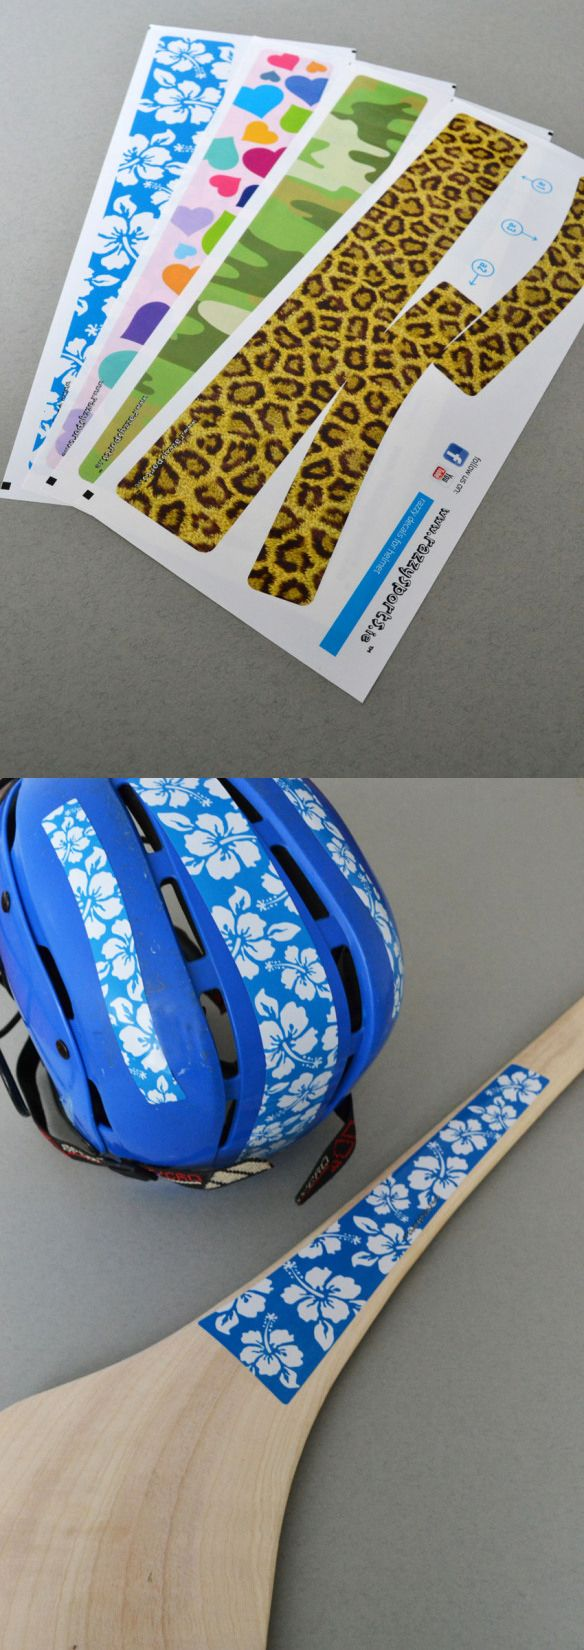 Glam up your hurley and helmet with these decals designed by us for Razzy Sports, available in a variety of patterns. www.akgraphics.ie